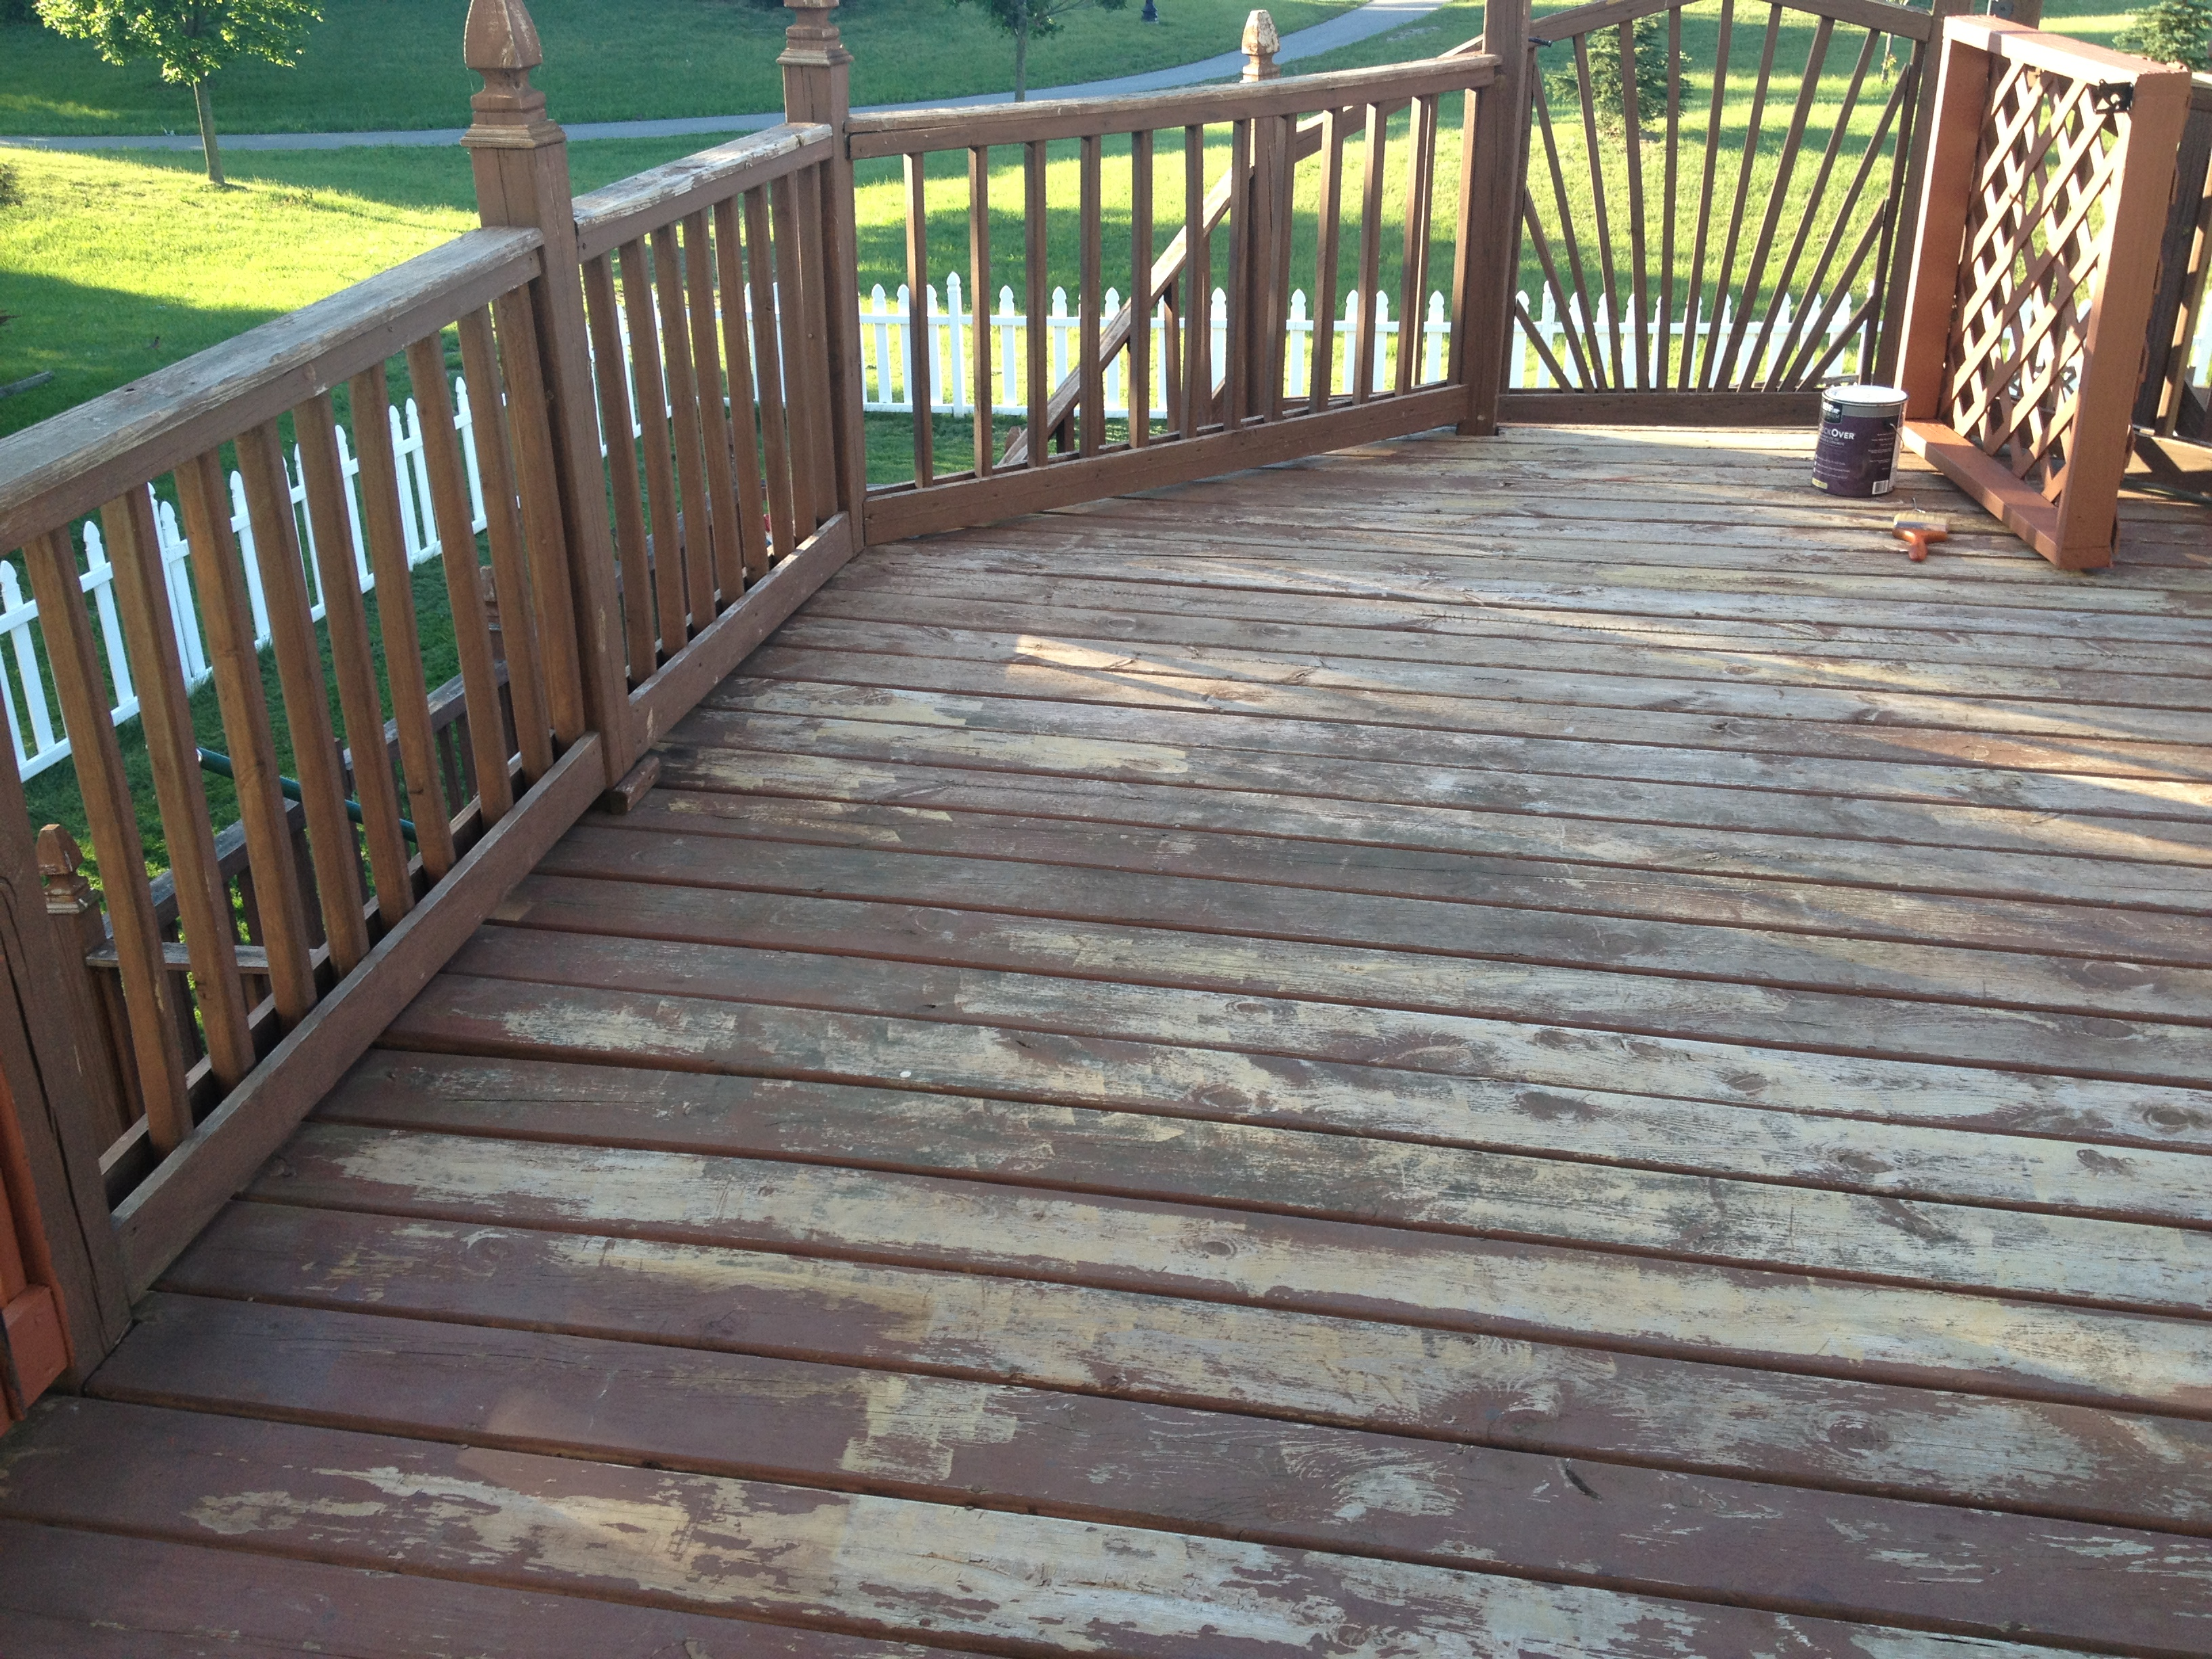 Behr deckover tonja 39 s travels - Exterior wood paint colors ideas ...